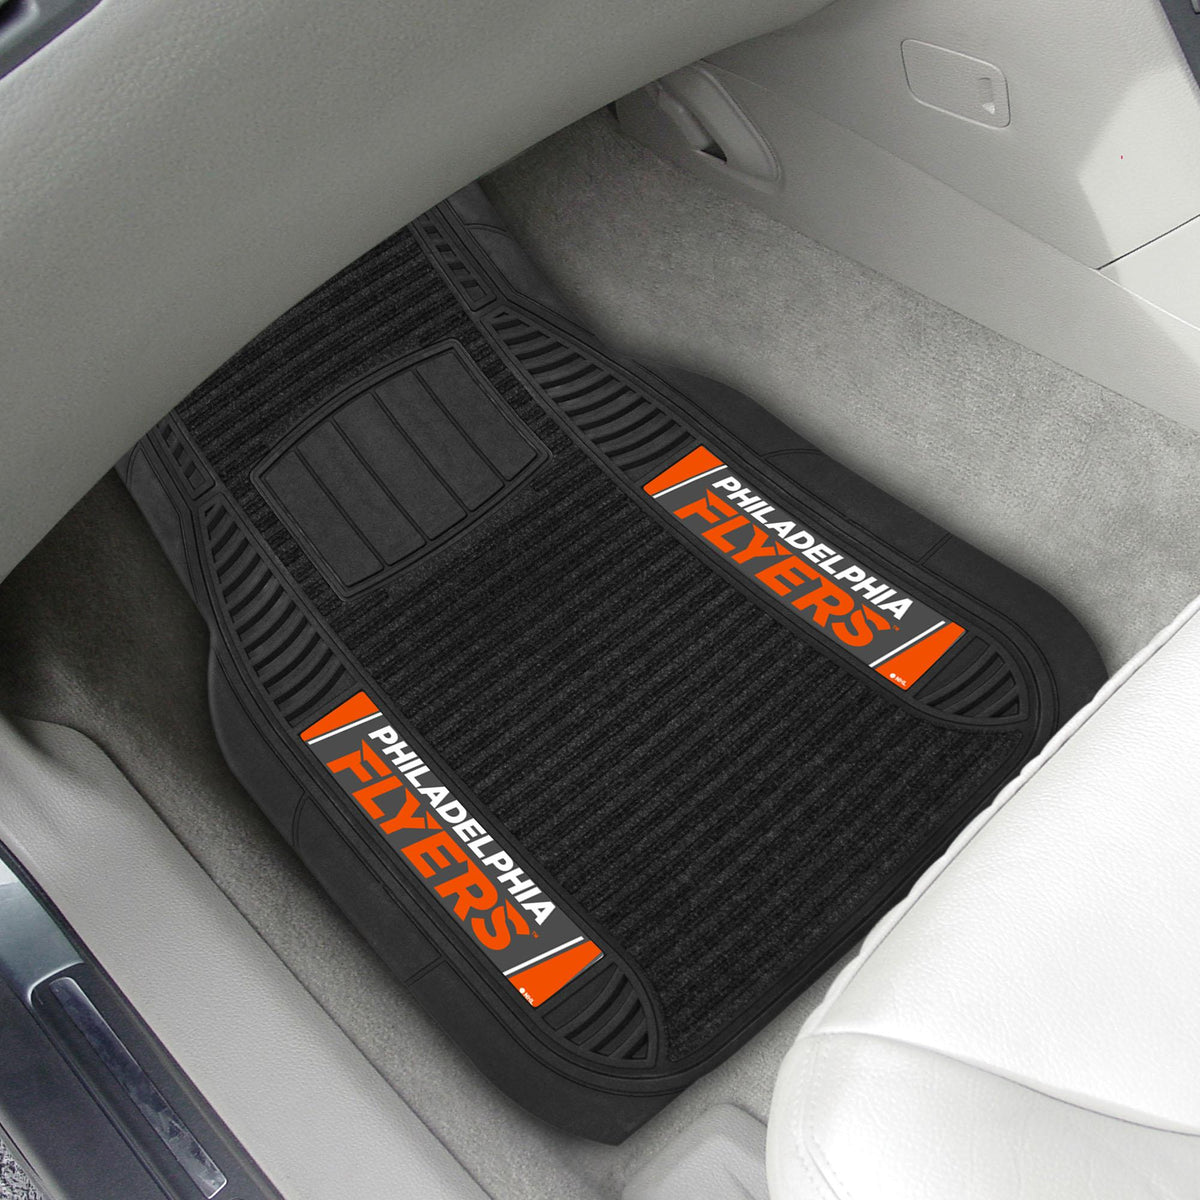 NHL - Deluxe Car Mat, 2-Piece Set NHL Mats, Front Car Mats, 2-pc Deluxe Car Mat Set, NHL, Auto Fan Mats Philadelphia Flyers